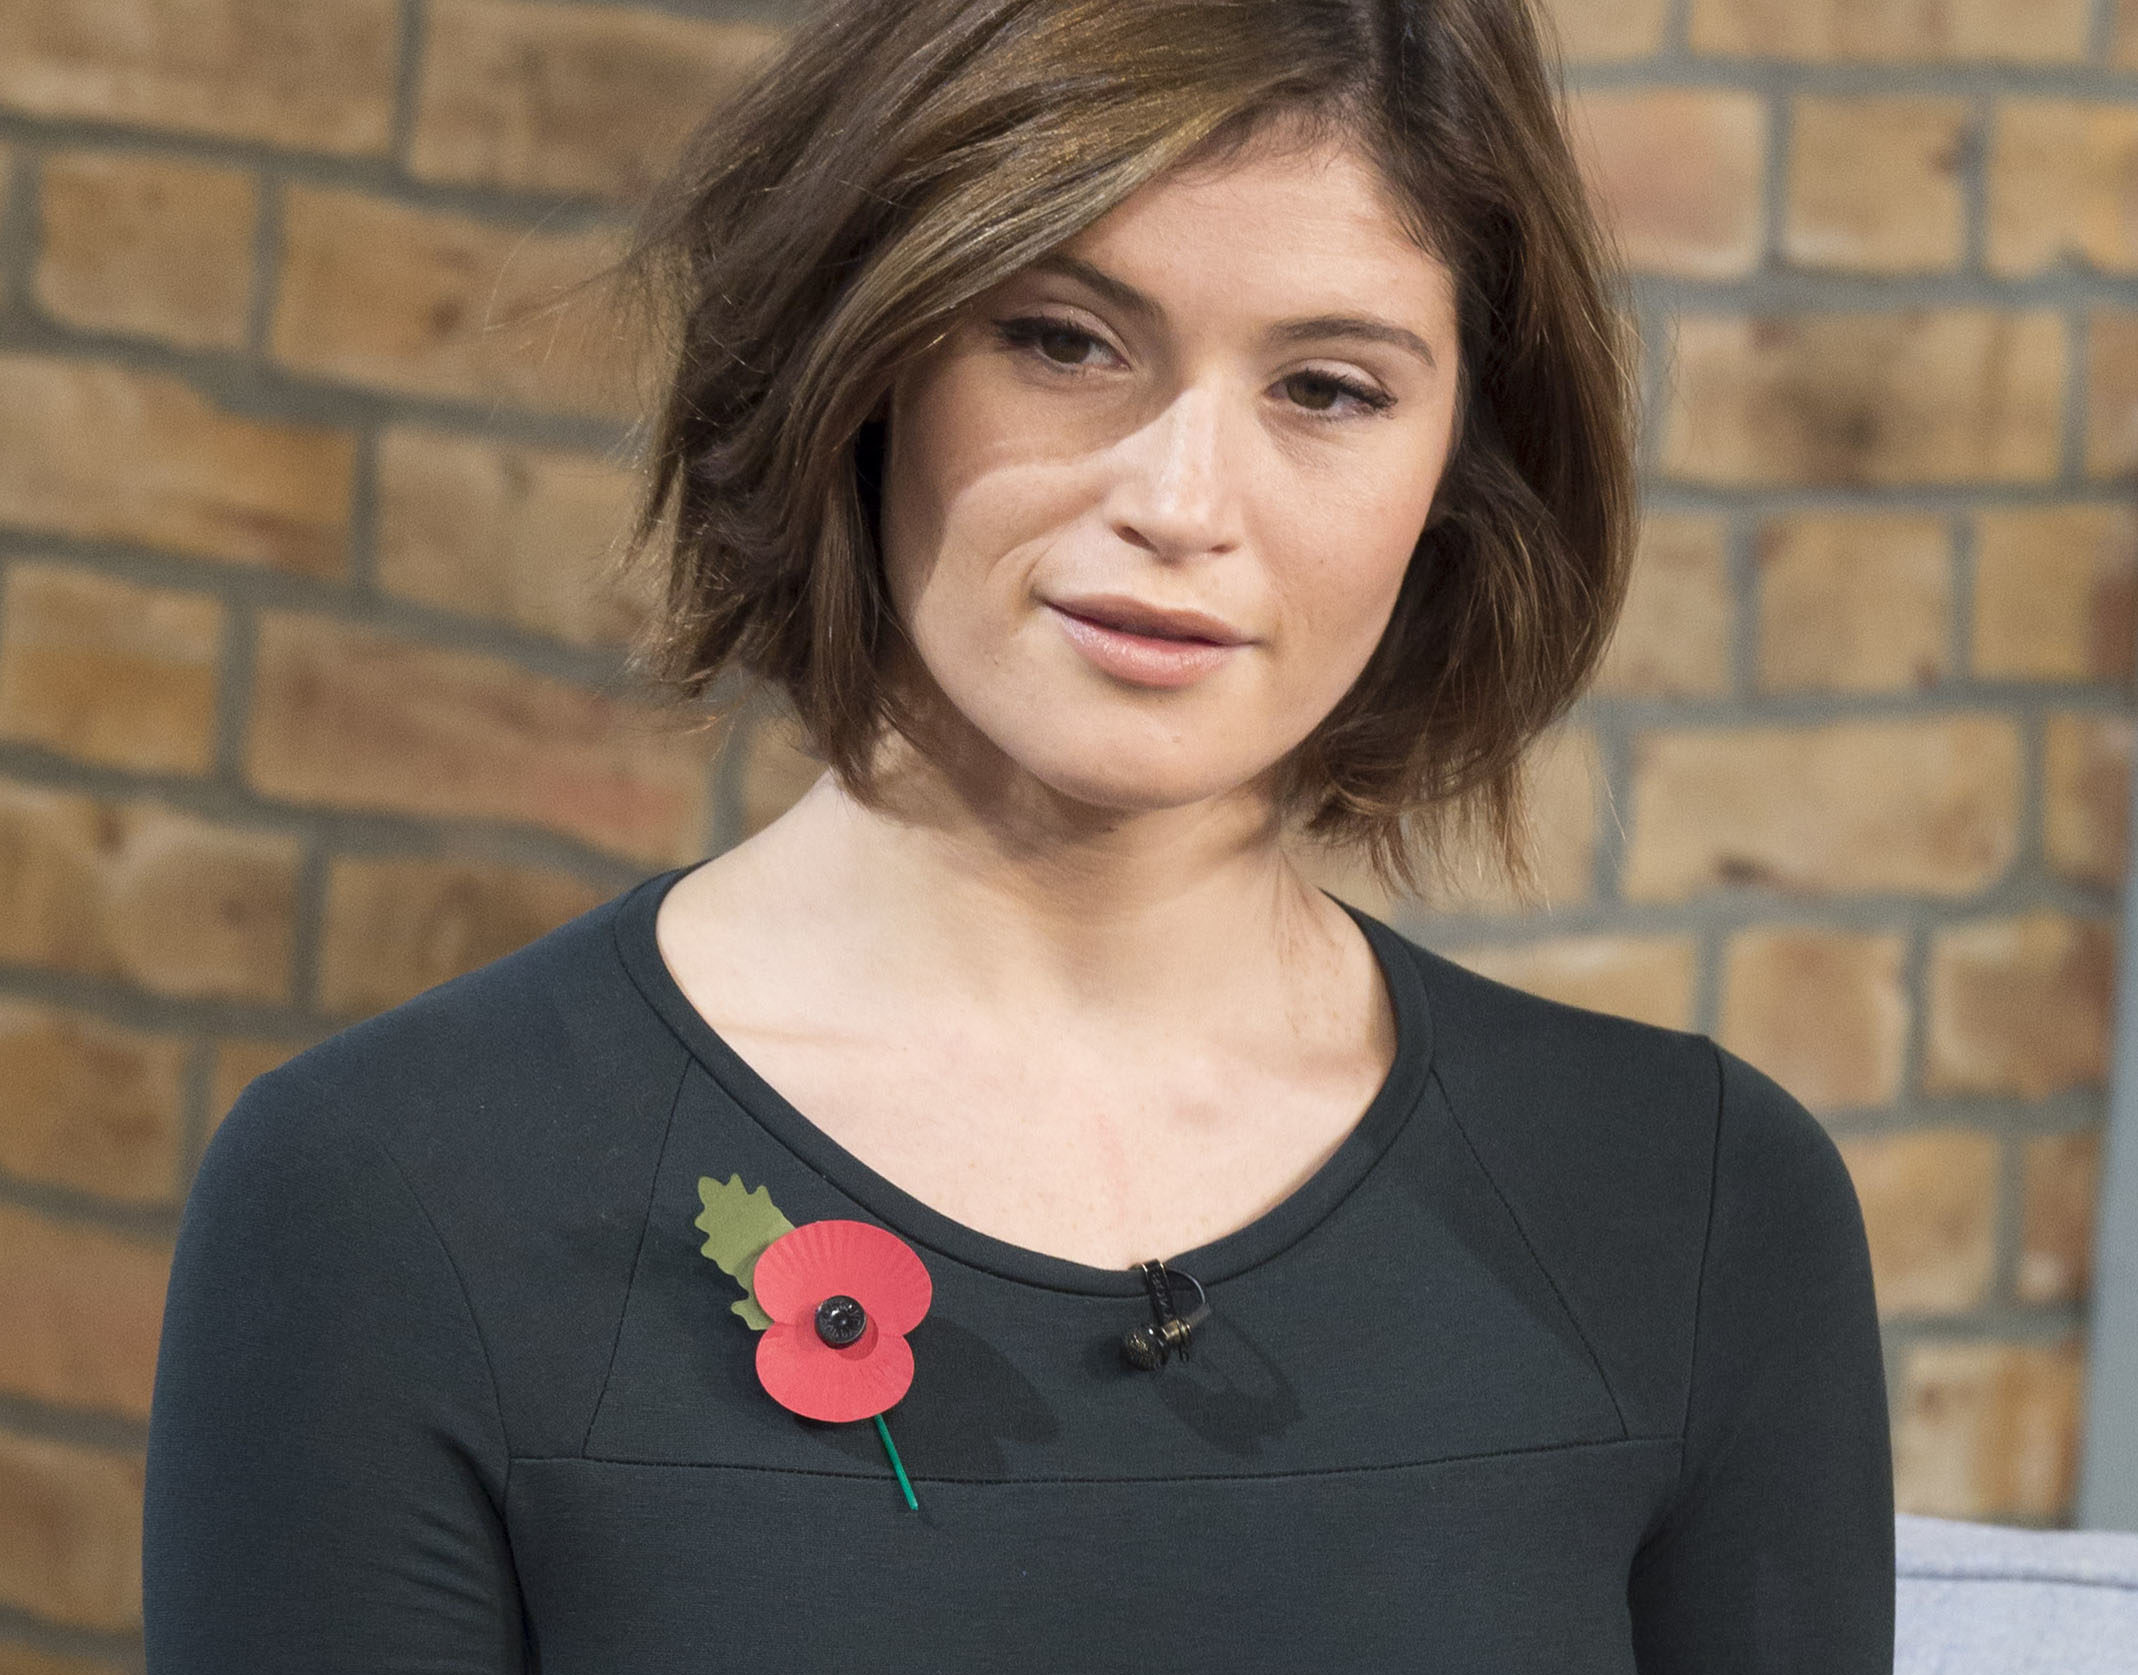 Gemma Arterton looking good